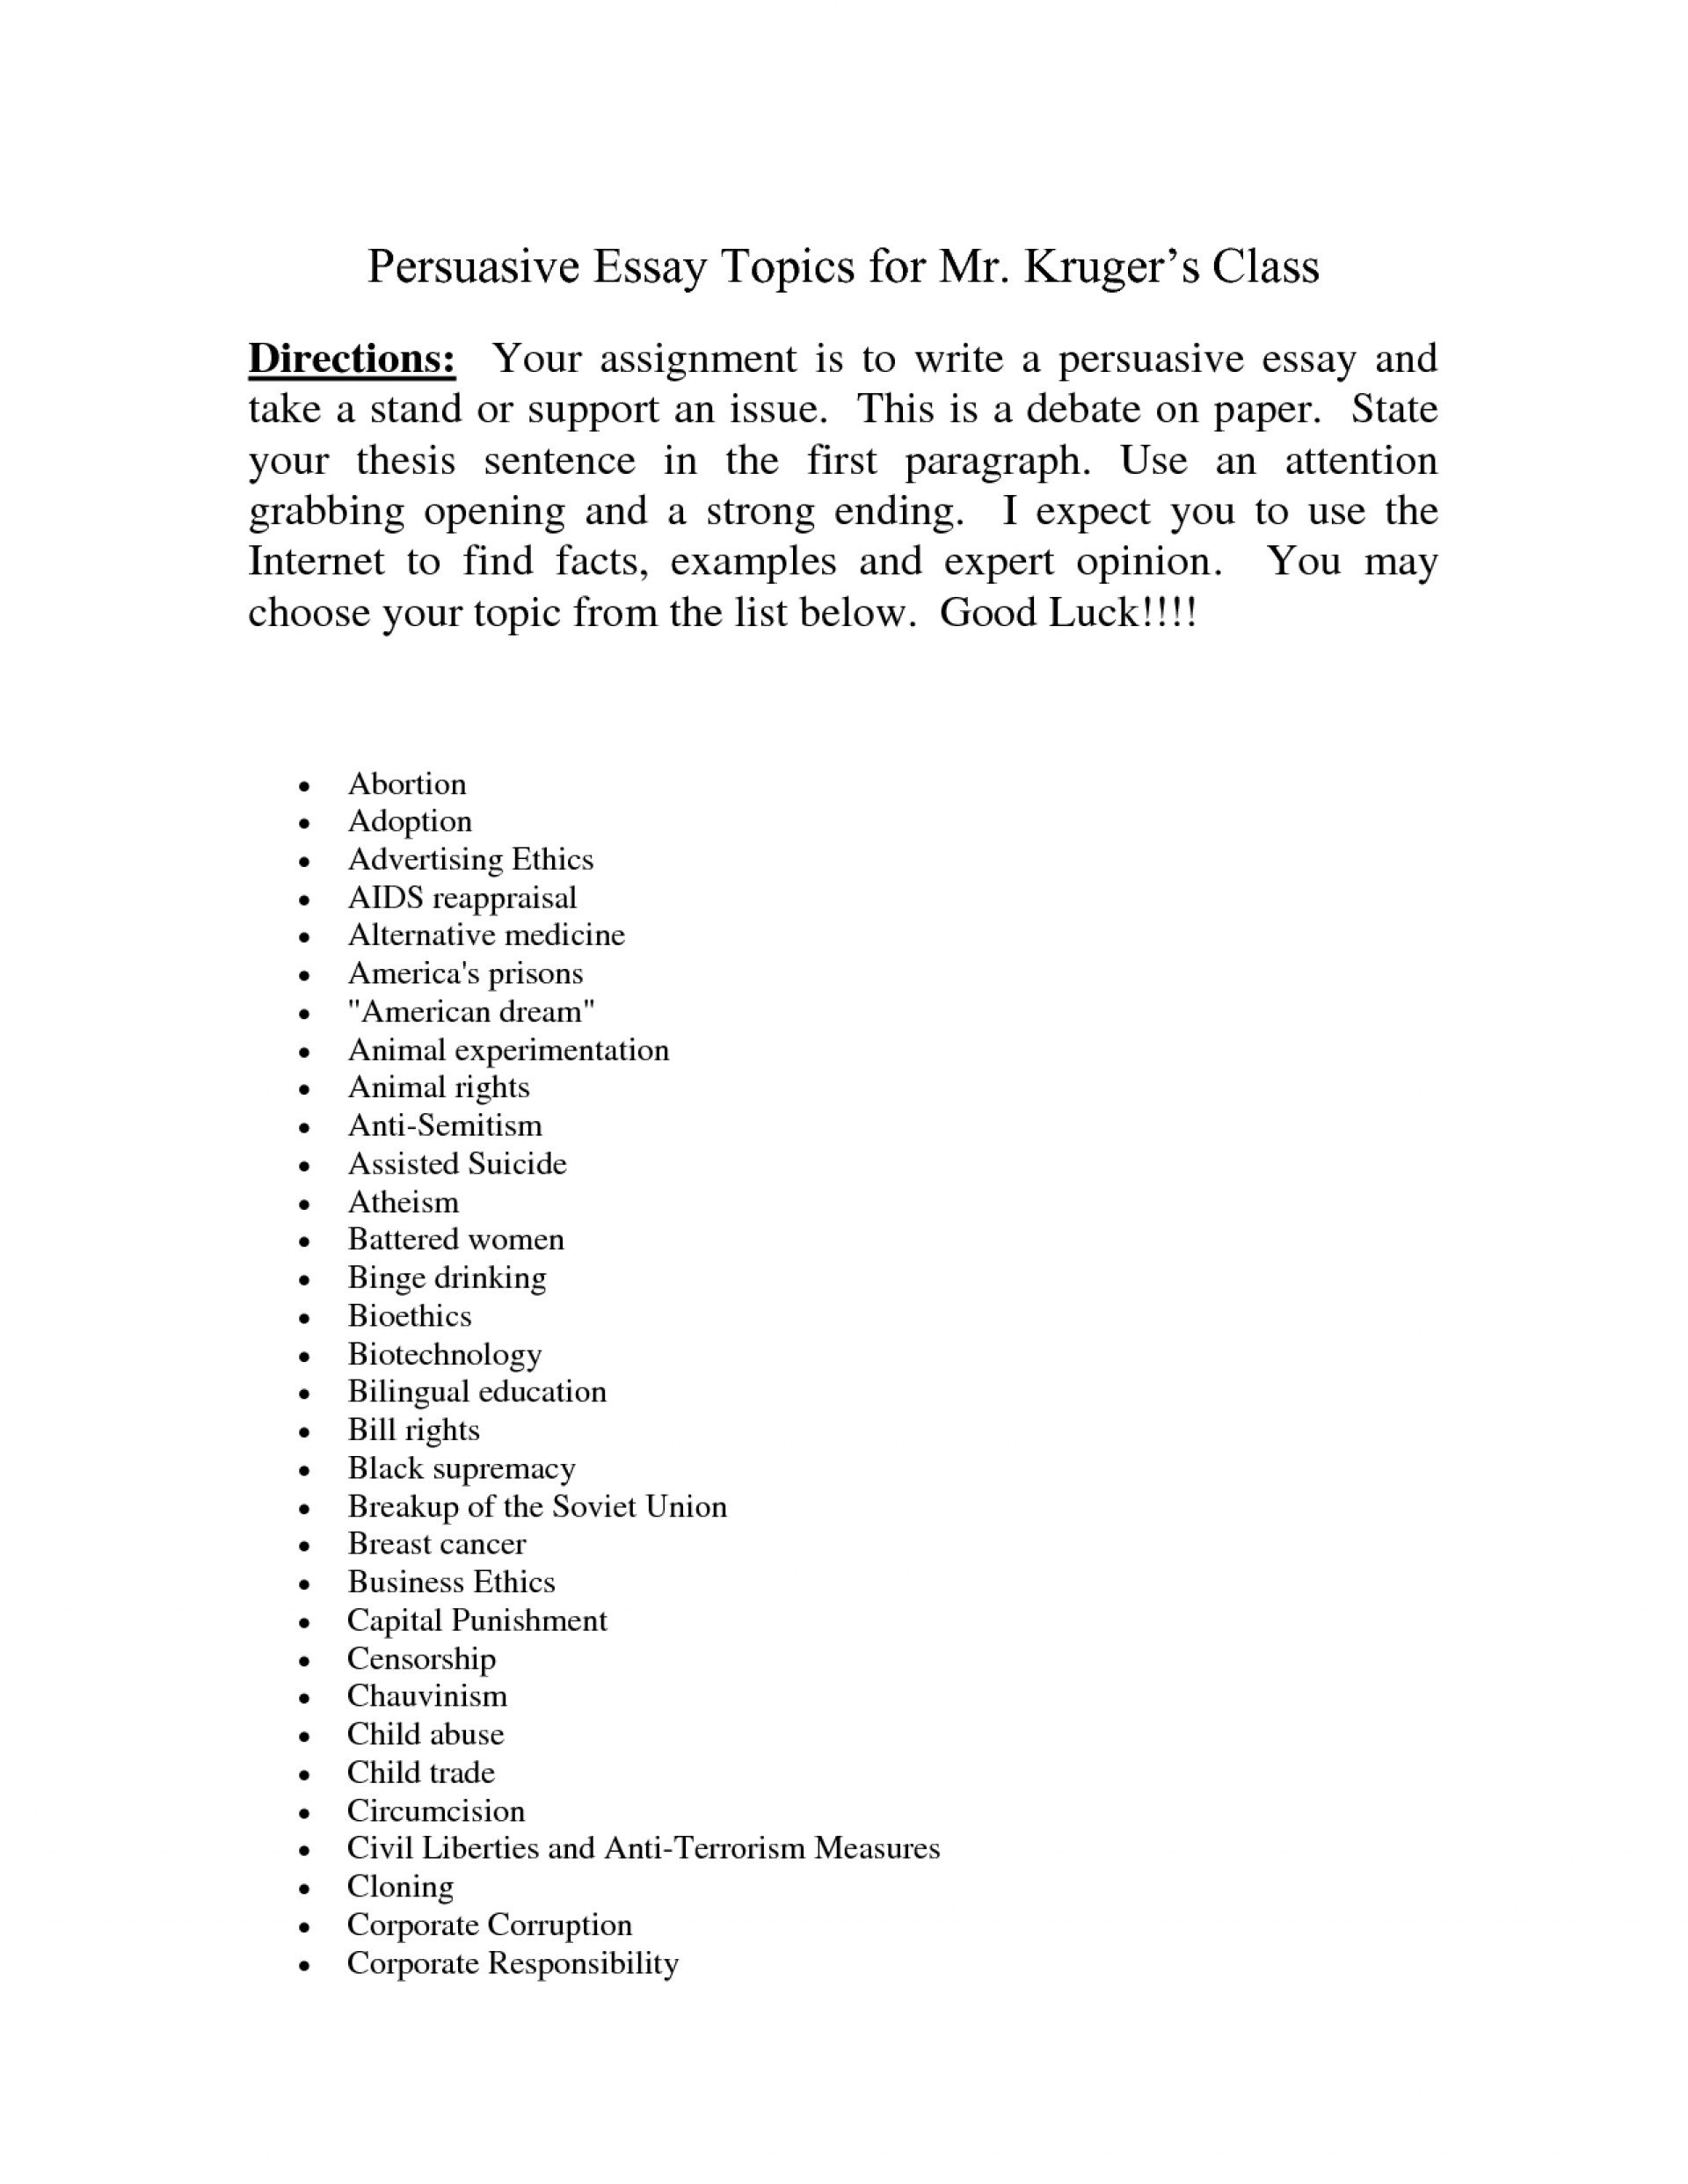 002 Essay Example Persuasive Topic Ideas Topics Outline Easy For High School Students College Essays Applicati 7th Graders Primary Middle Elementary Stunning 4th Grade Uk 1920